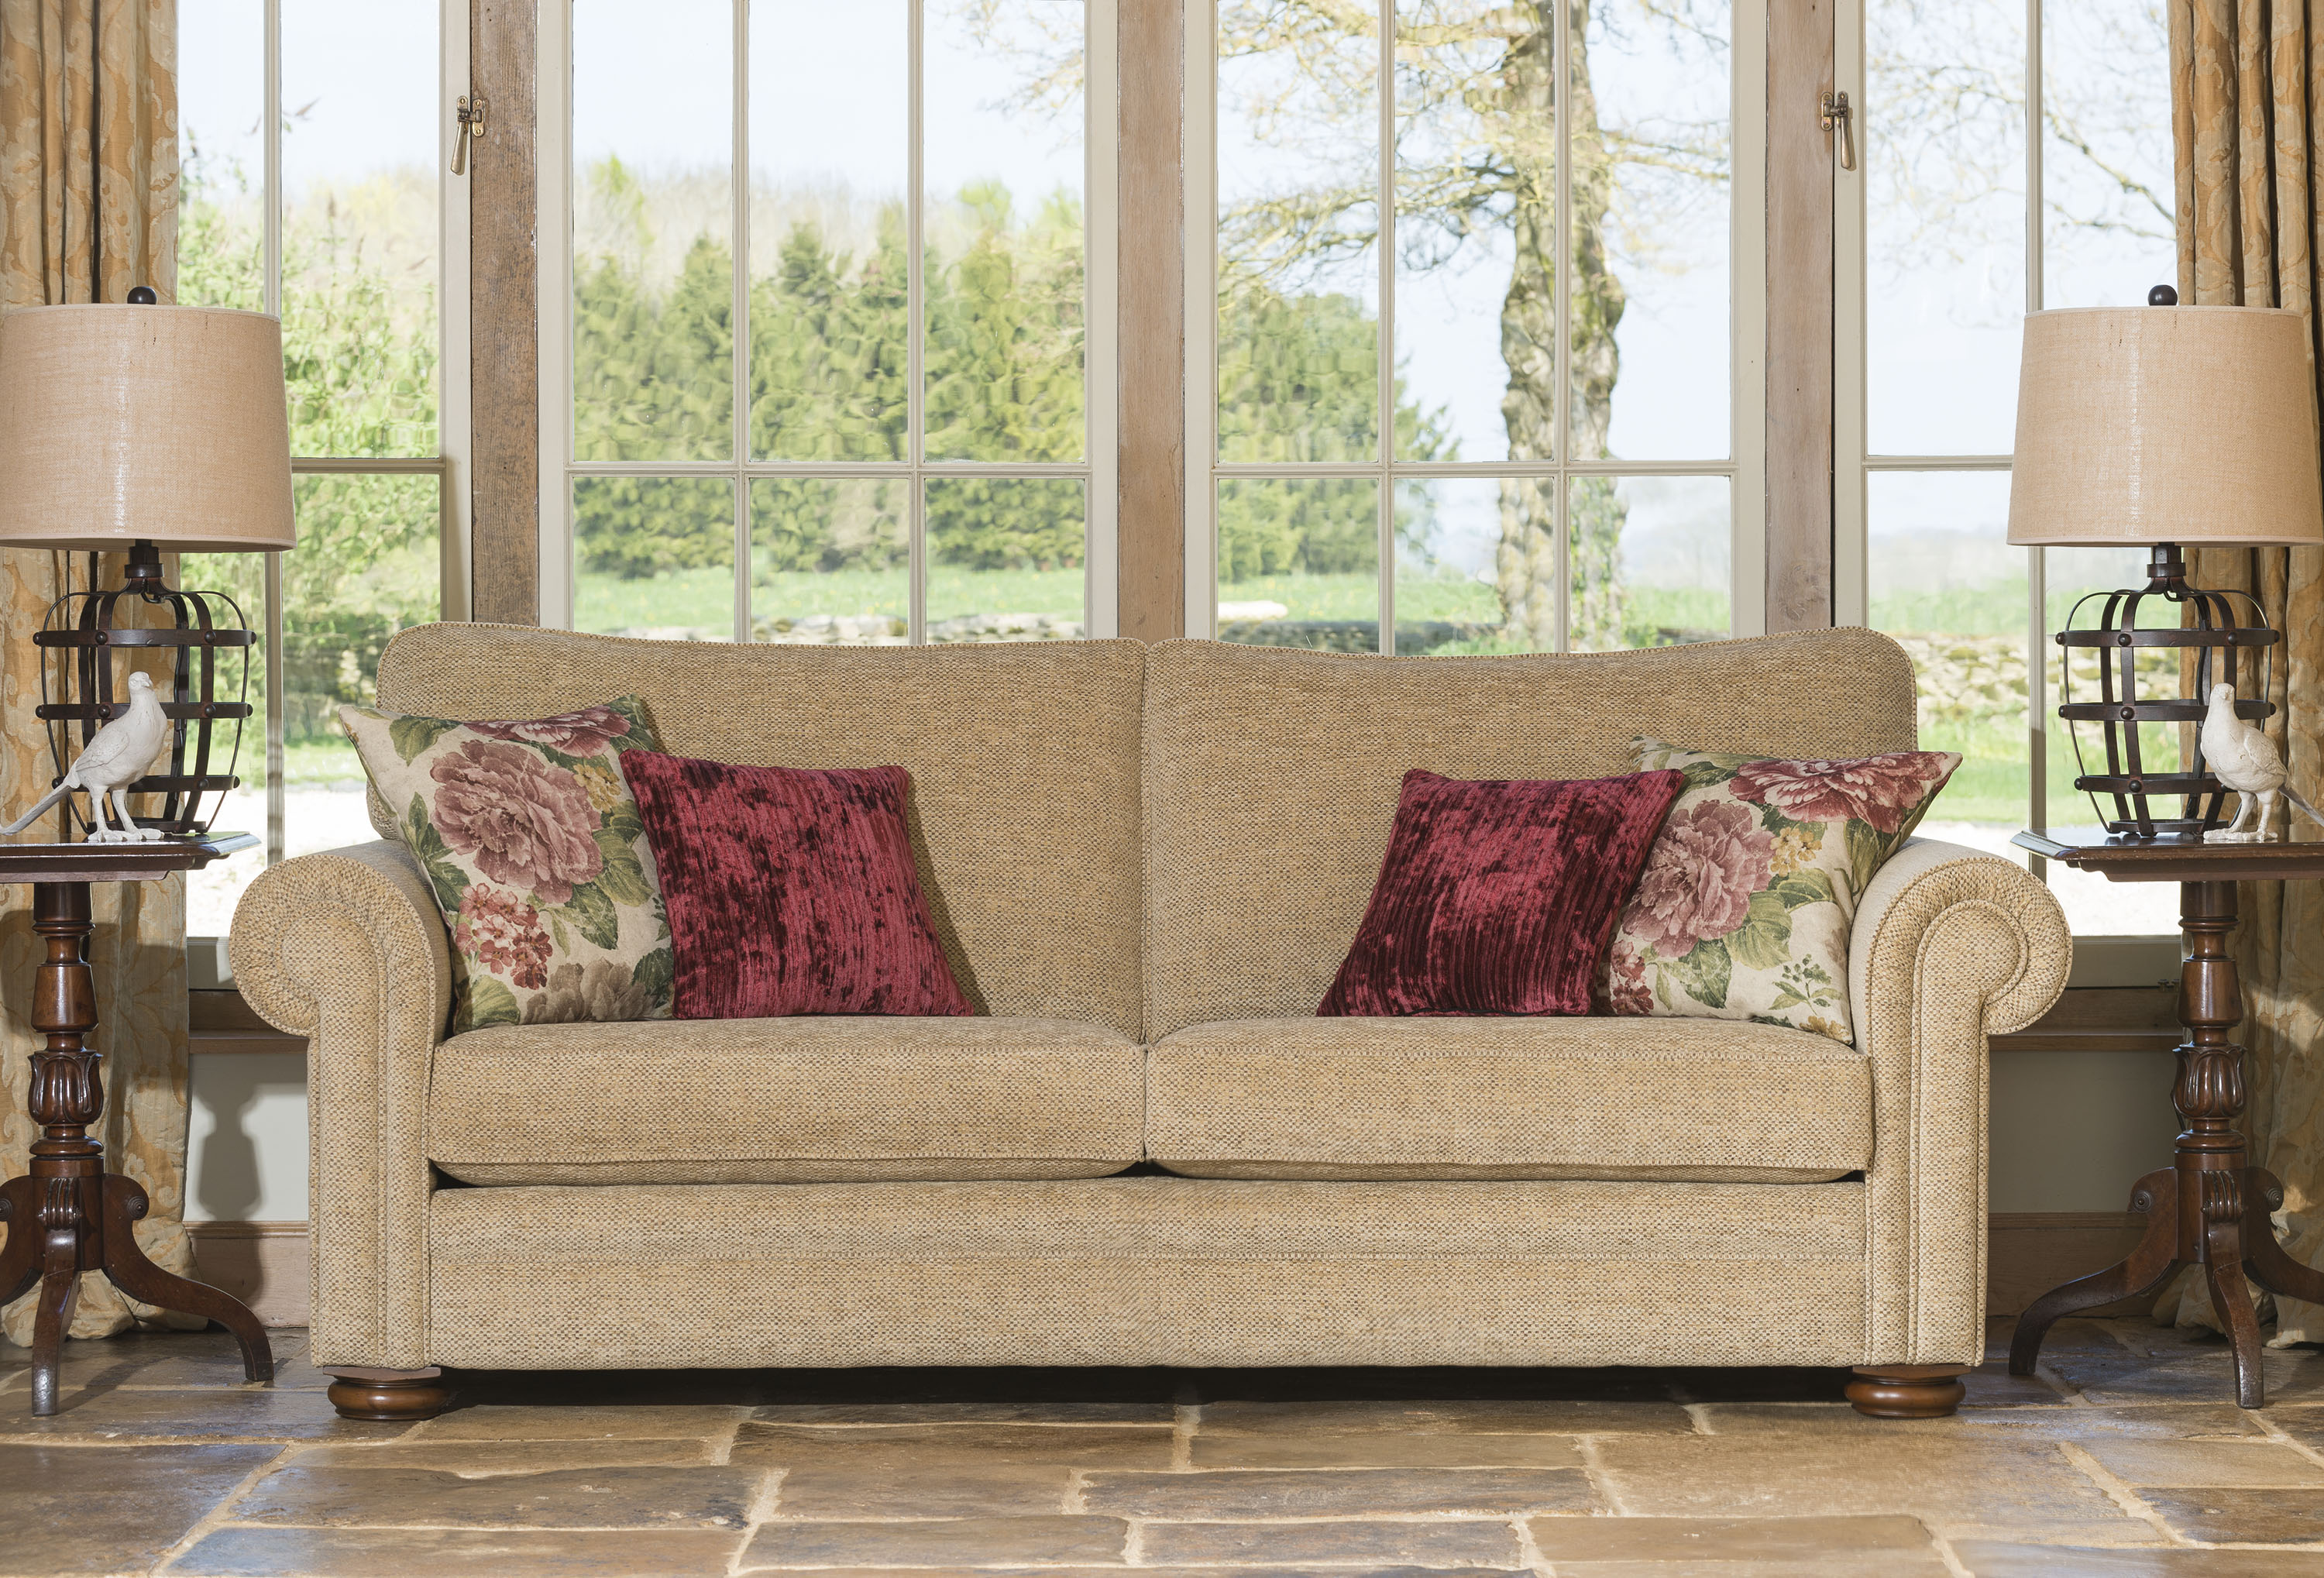 Cambridge Collins Furniture Ireland